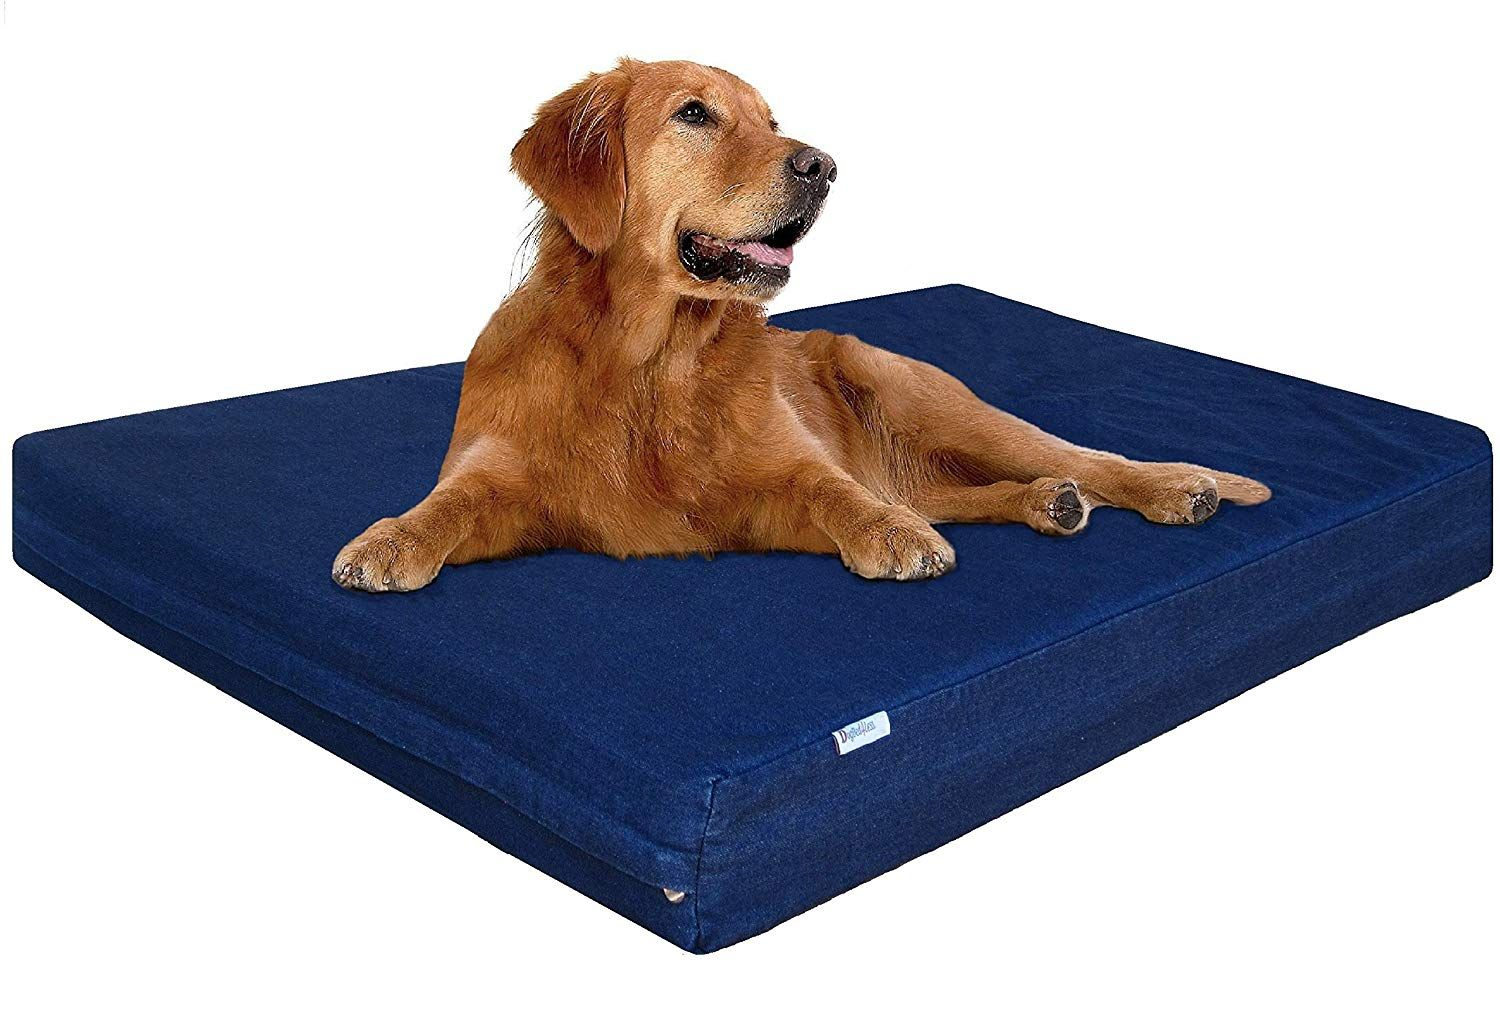 Dogbed4less Premium Memory Foam Dog Bed Pressure Relief